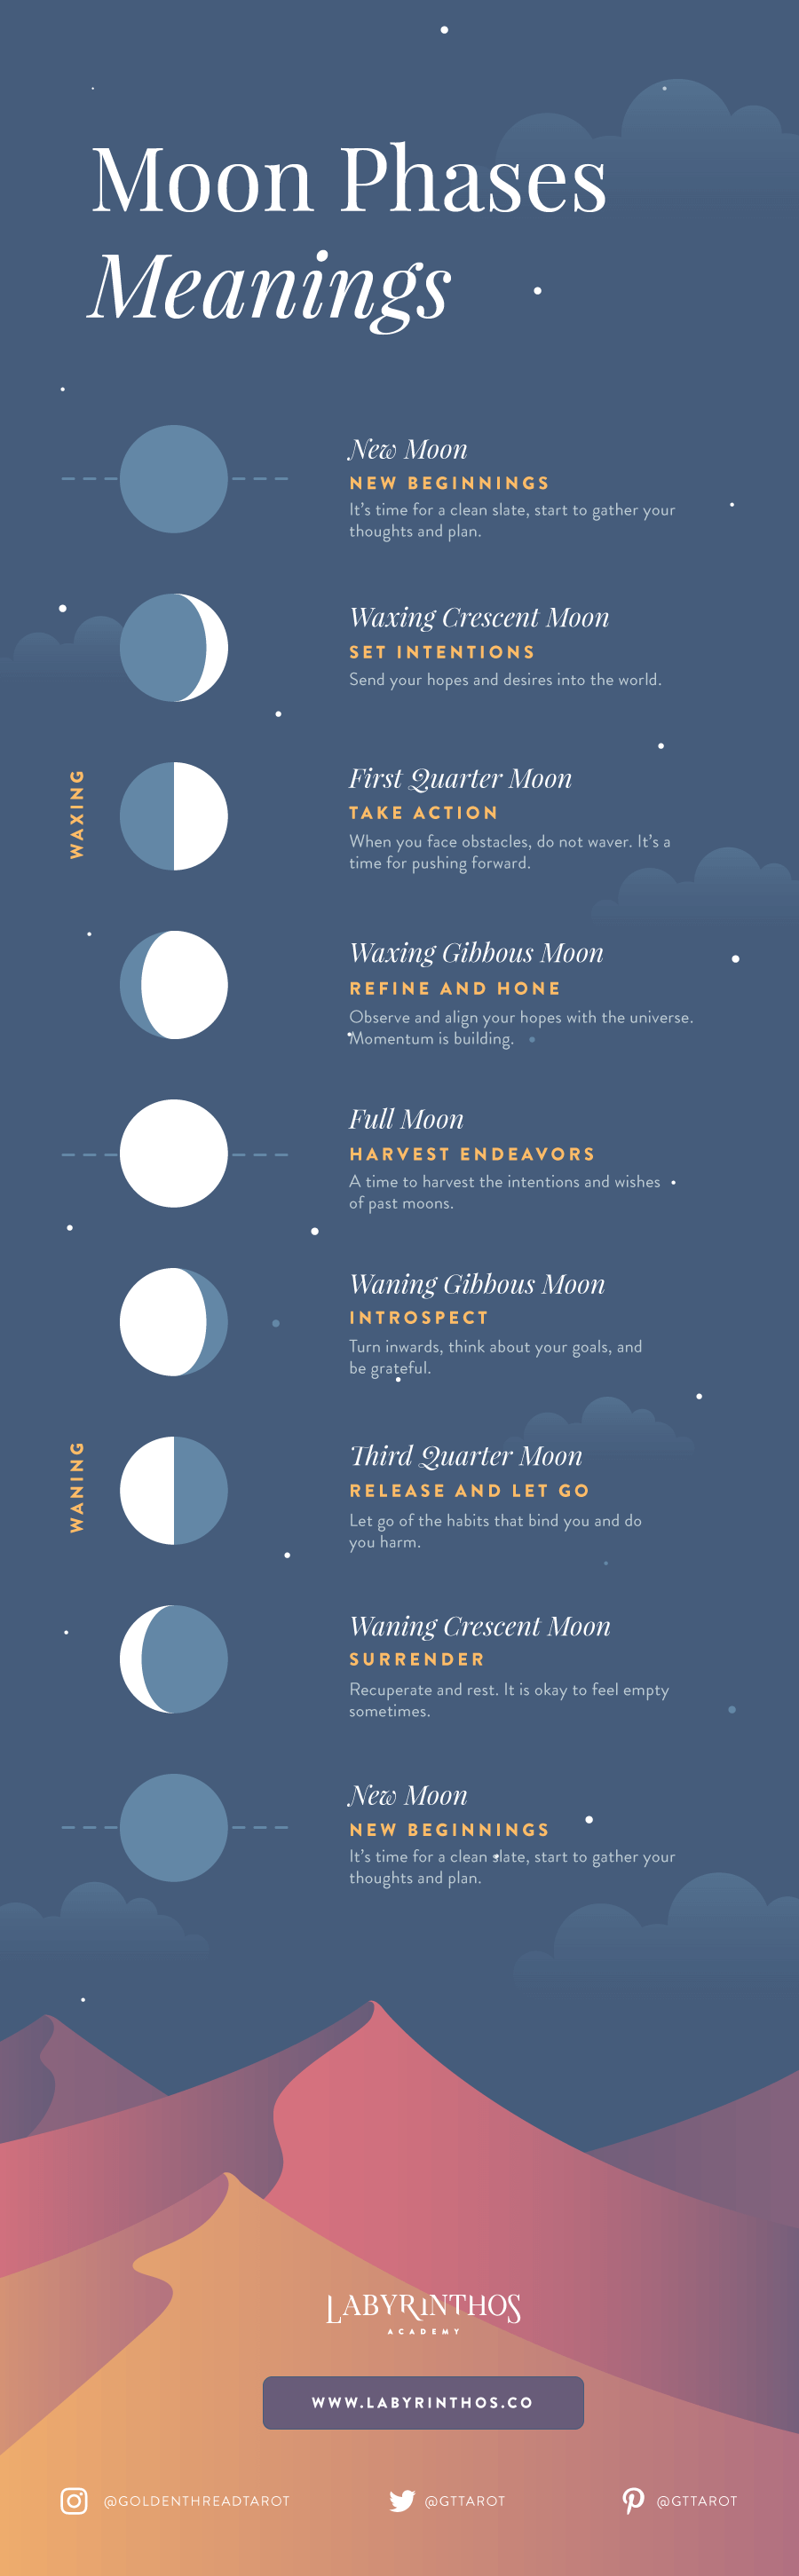 Moon Phases Meanings Infographic: A Beginner's Framework for